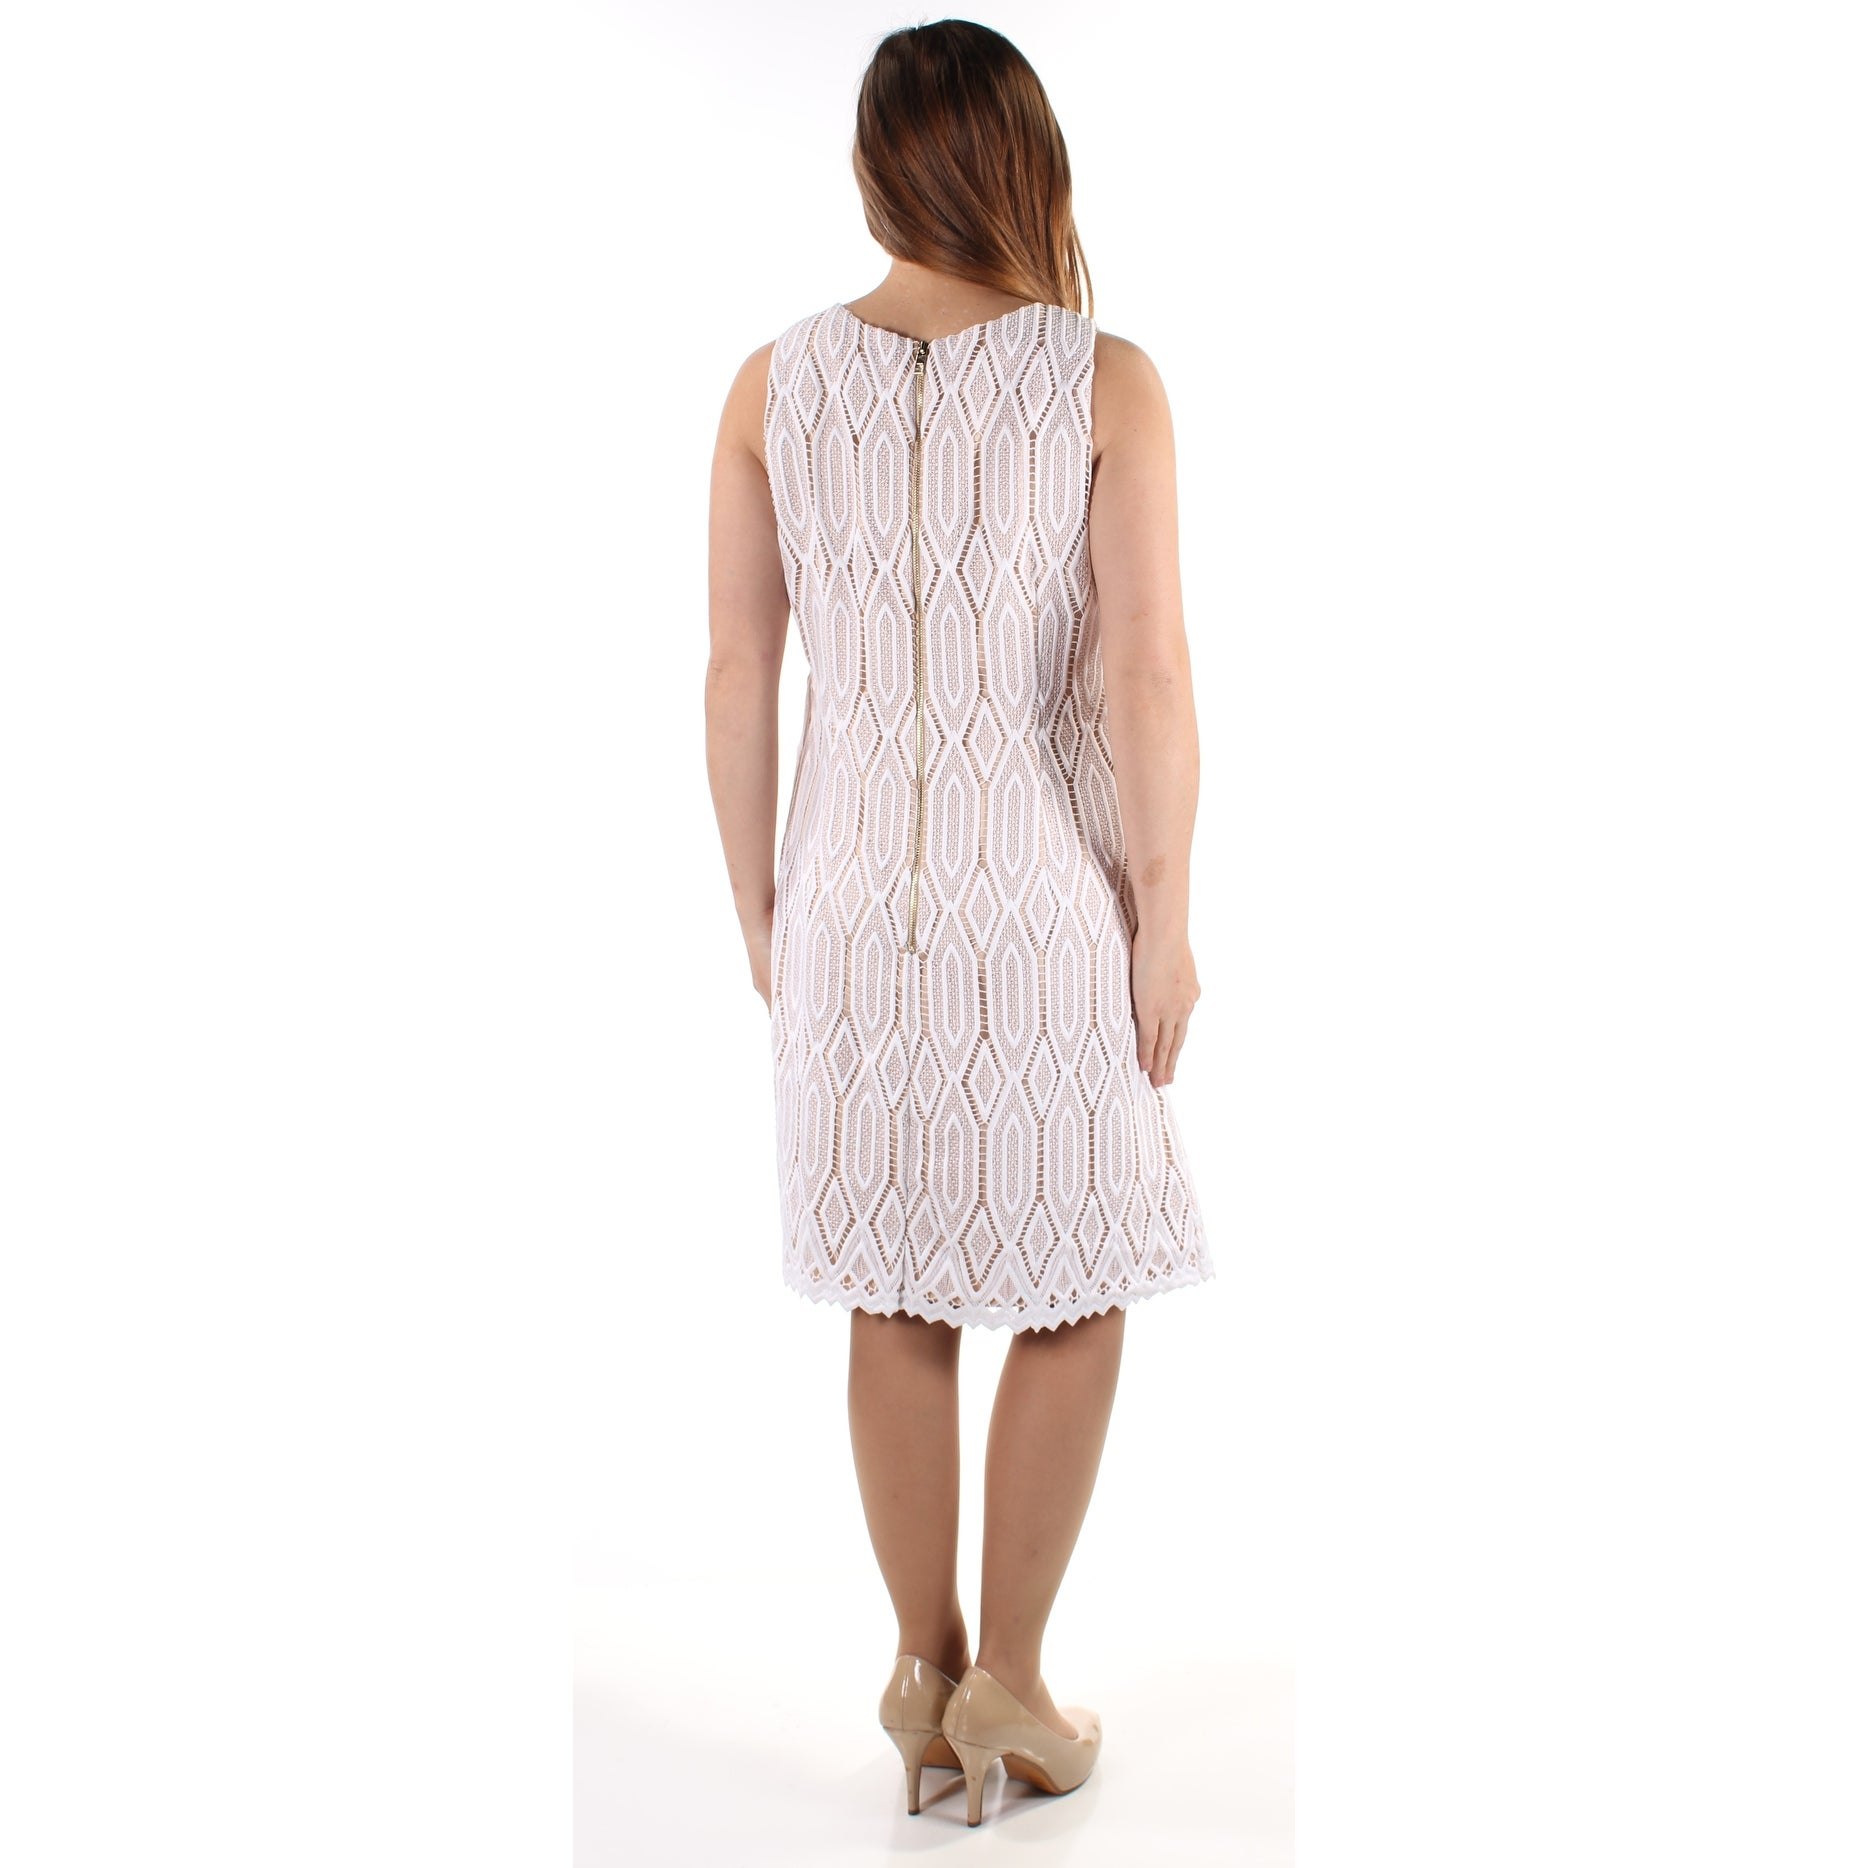 286a3e150b26 Shop VINCE CAMUTO Womens White Lace Sleeveless Jewel Neck Below The Knee  Sheath Dress Size: 14 - Free Shipping On Orders Over $45 - Overstock -  21269468